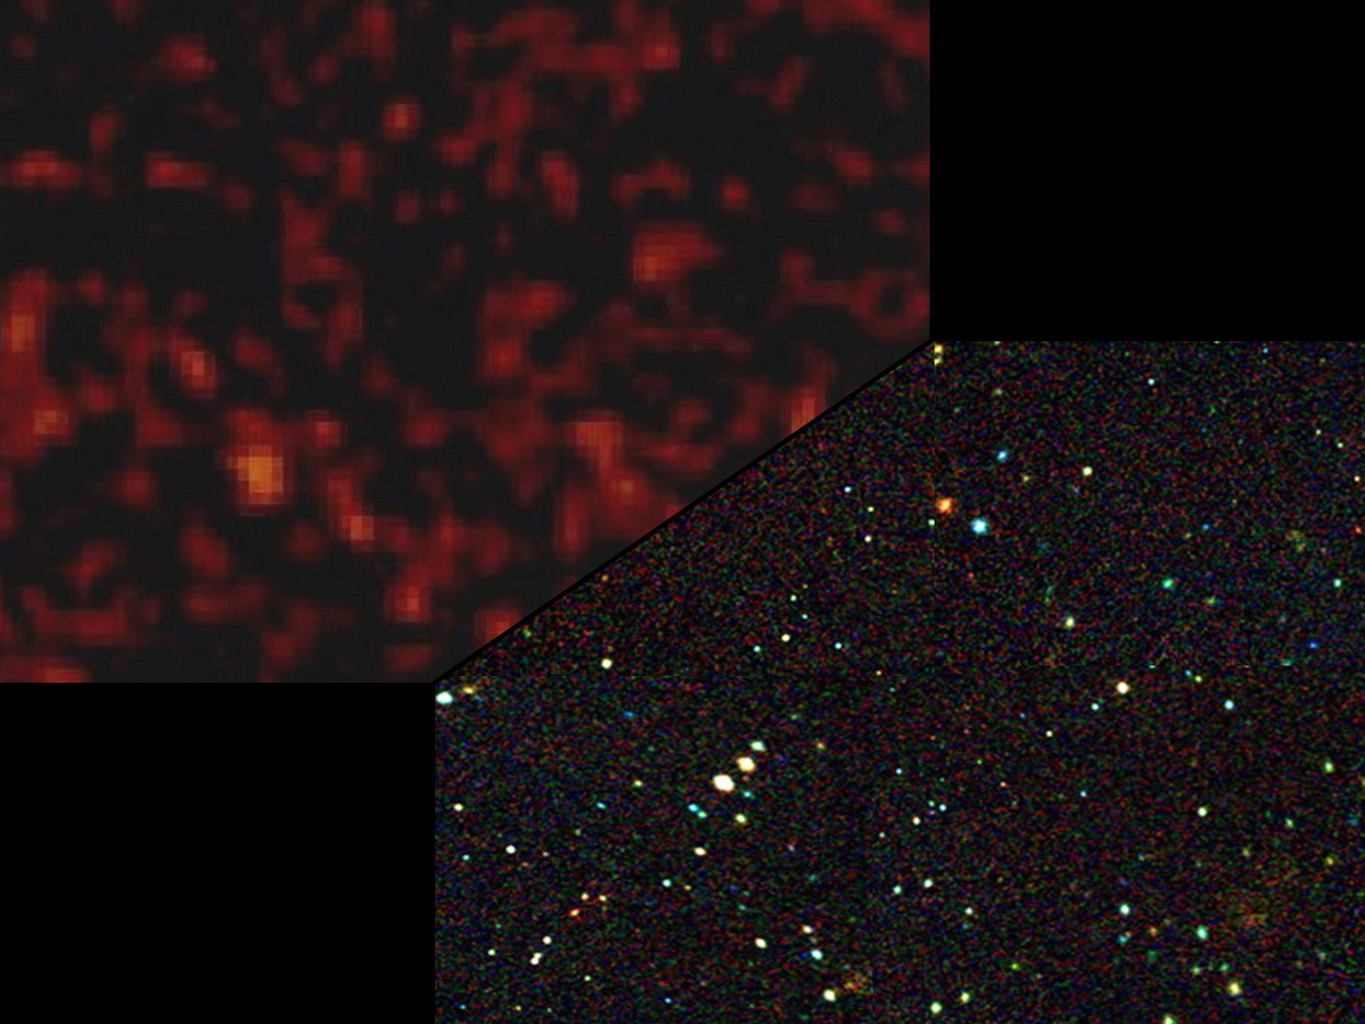 NASA's NuSTAR will be able to identify individual black holes making up the diffuse X-ray glow, also called the X-ray background. At bottom right is a simulated view of what NuSTAR will see.